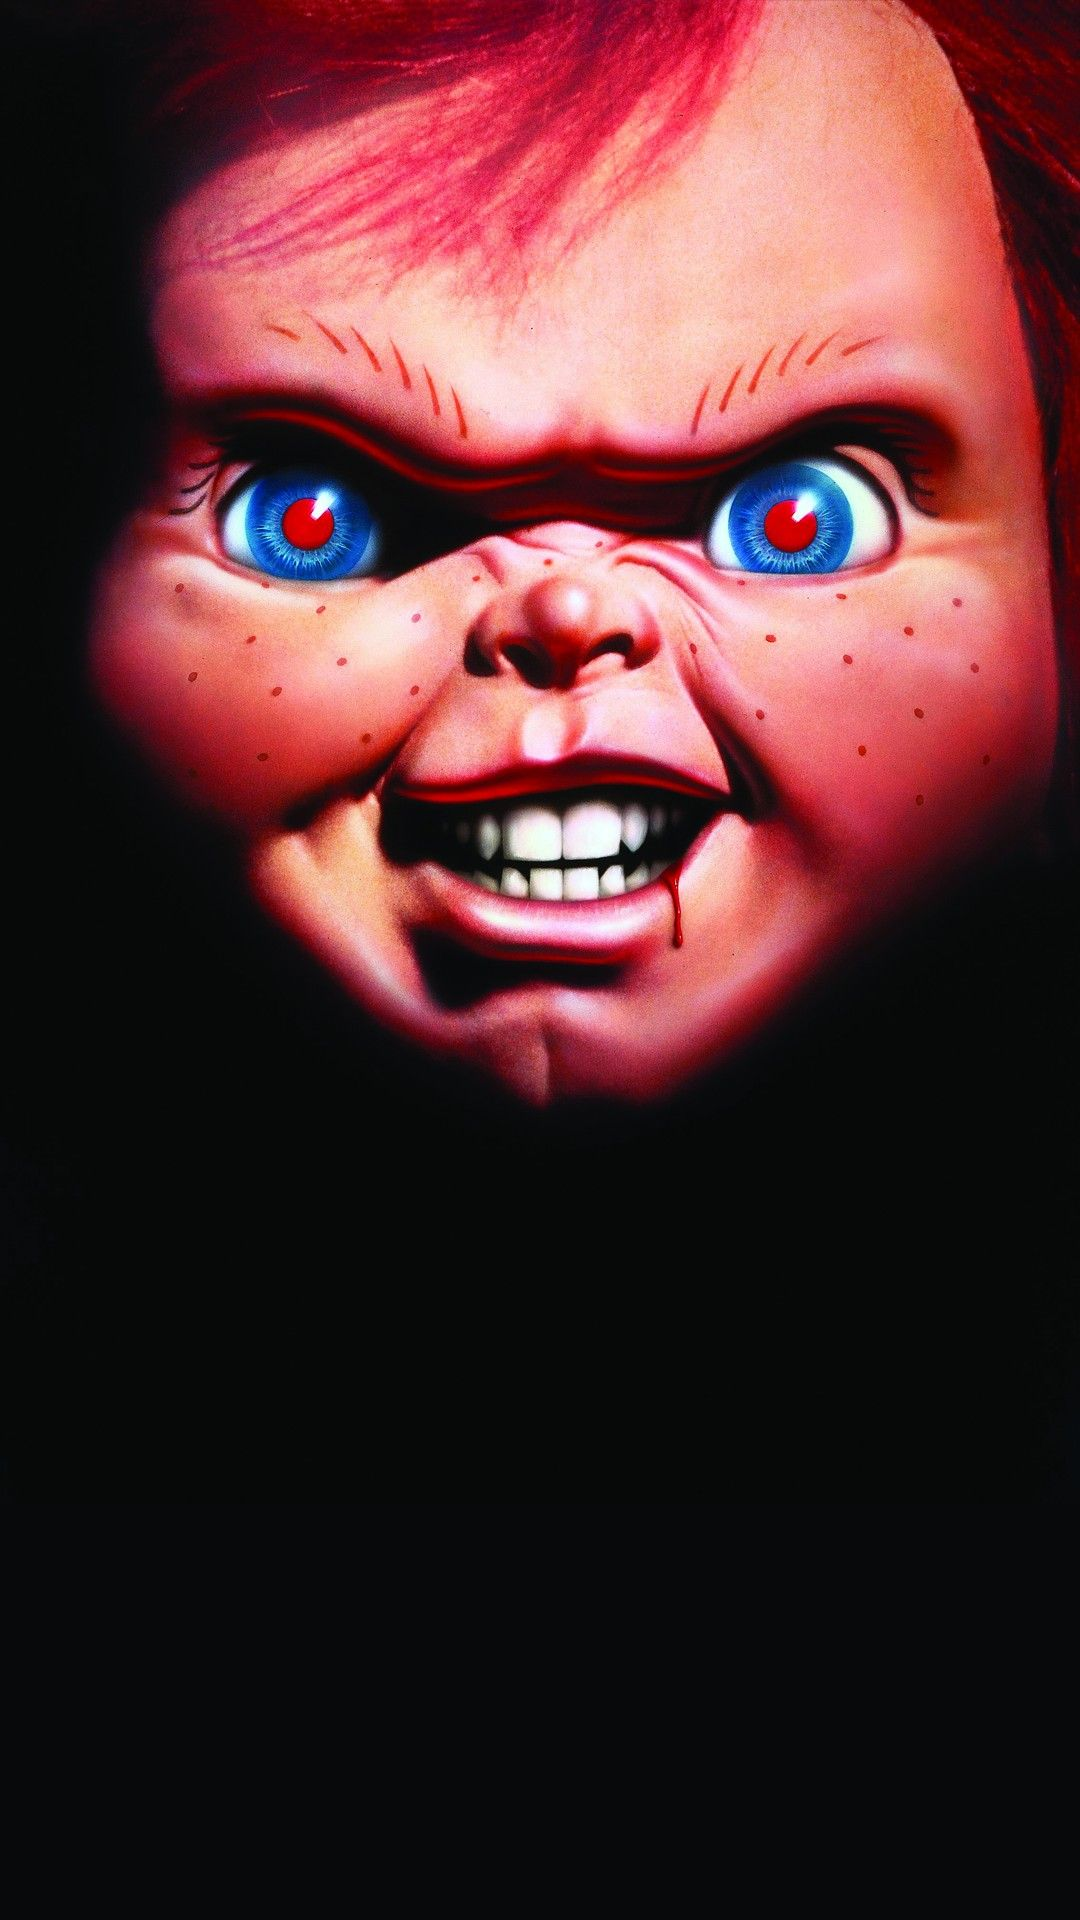 Chucky Scary Doll Phone Wallpaper Hd Check More At Https Phonewallp Com Chucky Scary Doll Phone Wallpaper Hd Scary Dolls Scary Images Scary Doll Movies